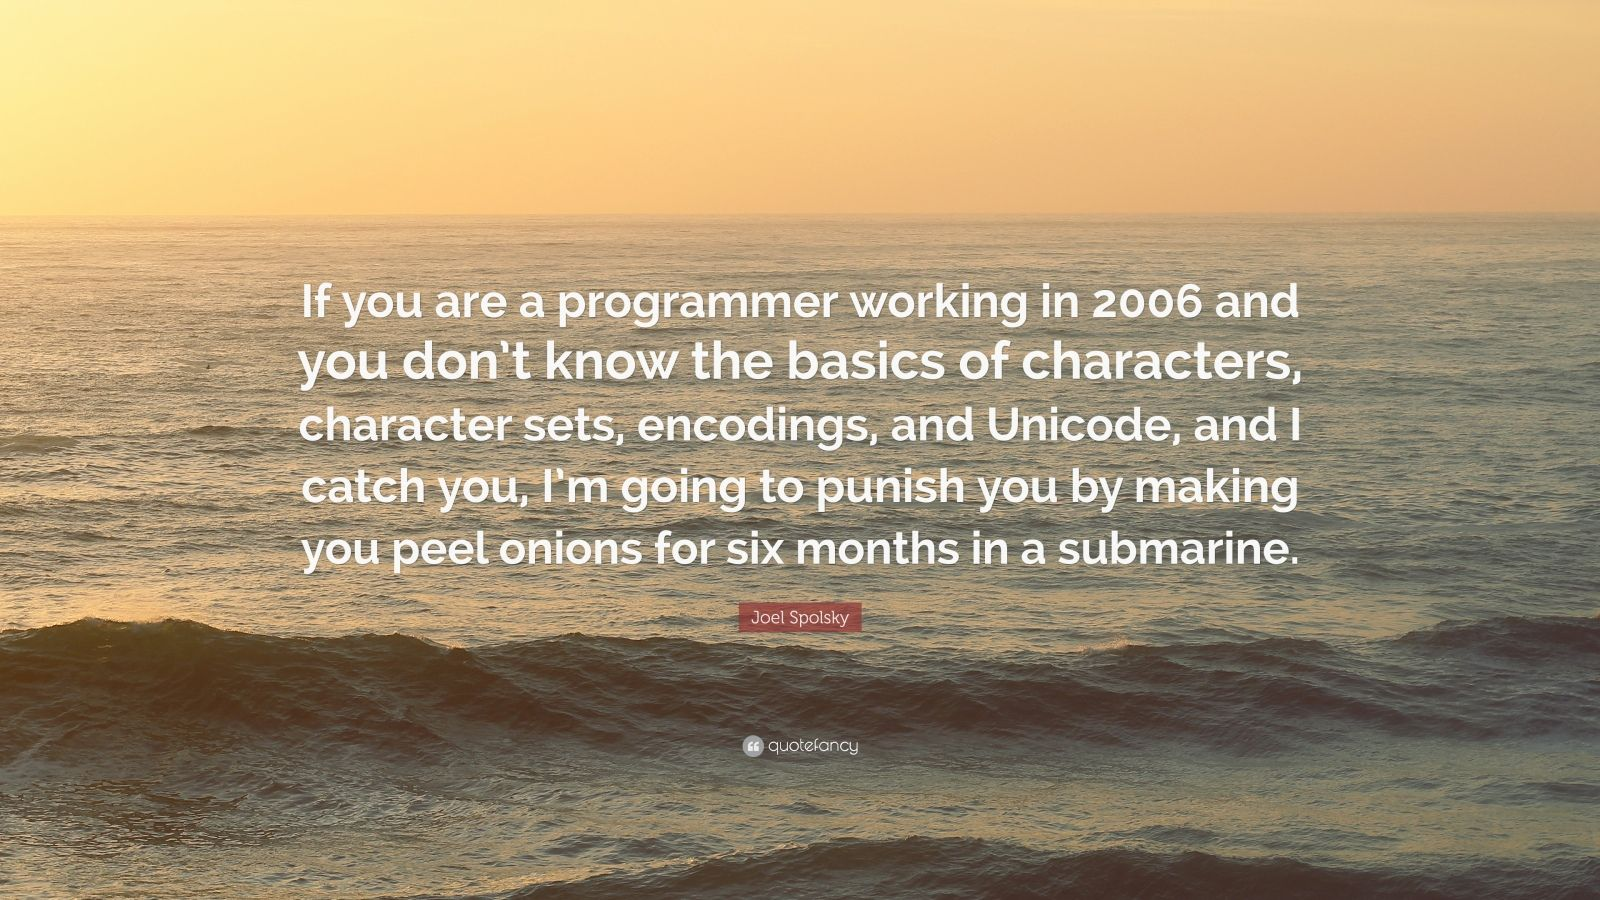 "Joel Spolsky Quote: ""If you are a programmer working in 2006 and you don't know the basics of characters, character sets, encodings, and Unicode, and I catch you, I'm going to punish you by making you peel onions for six months in a submarine."""